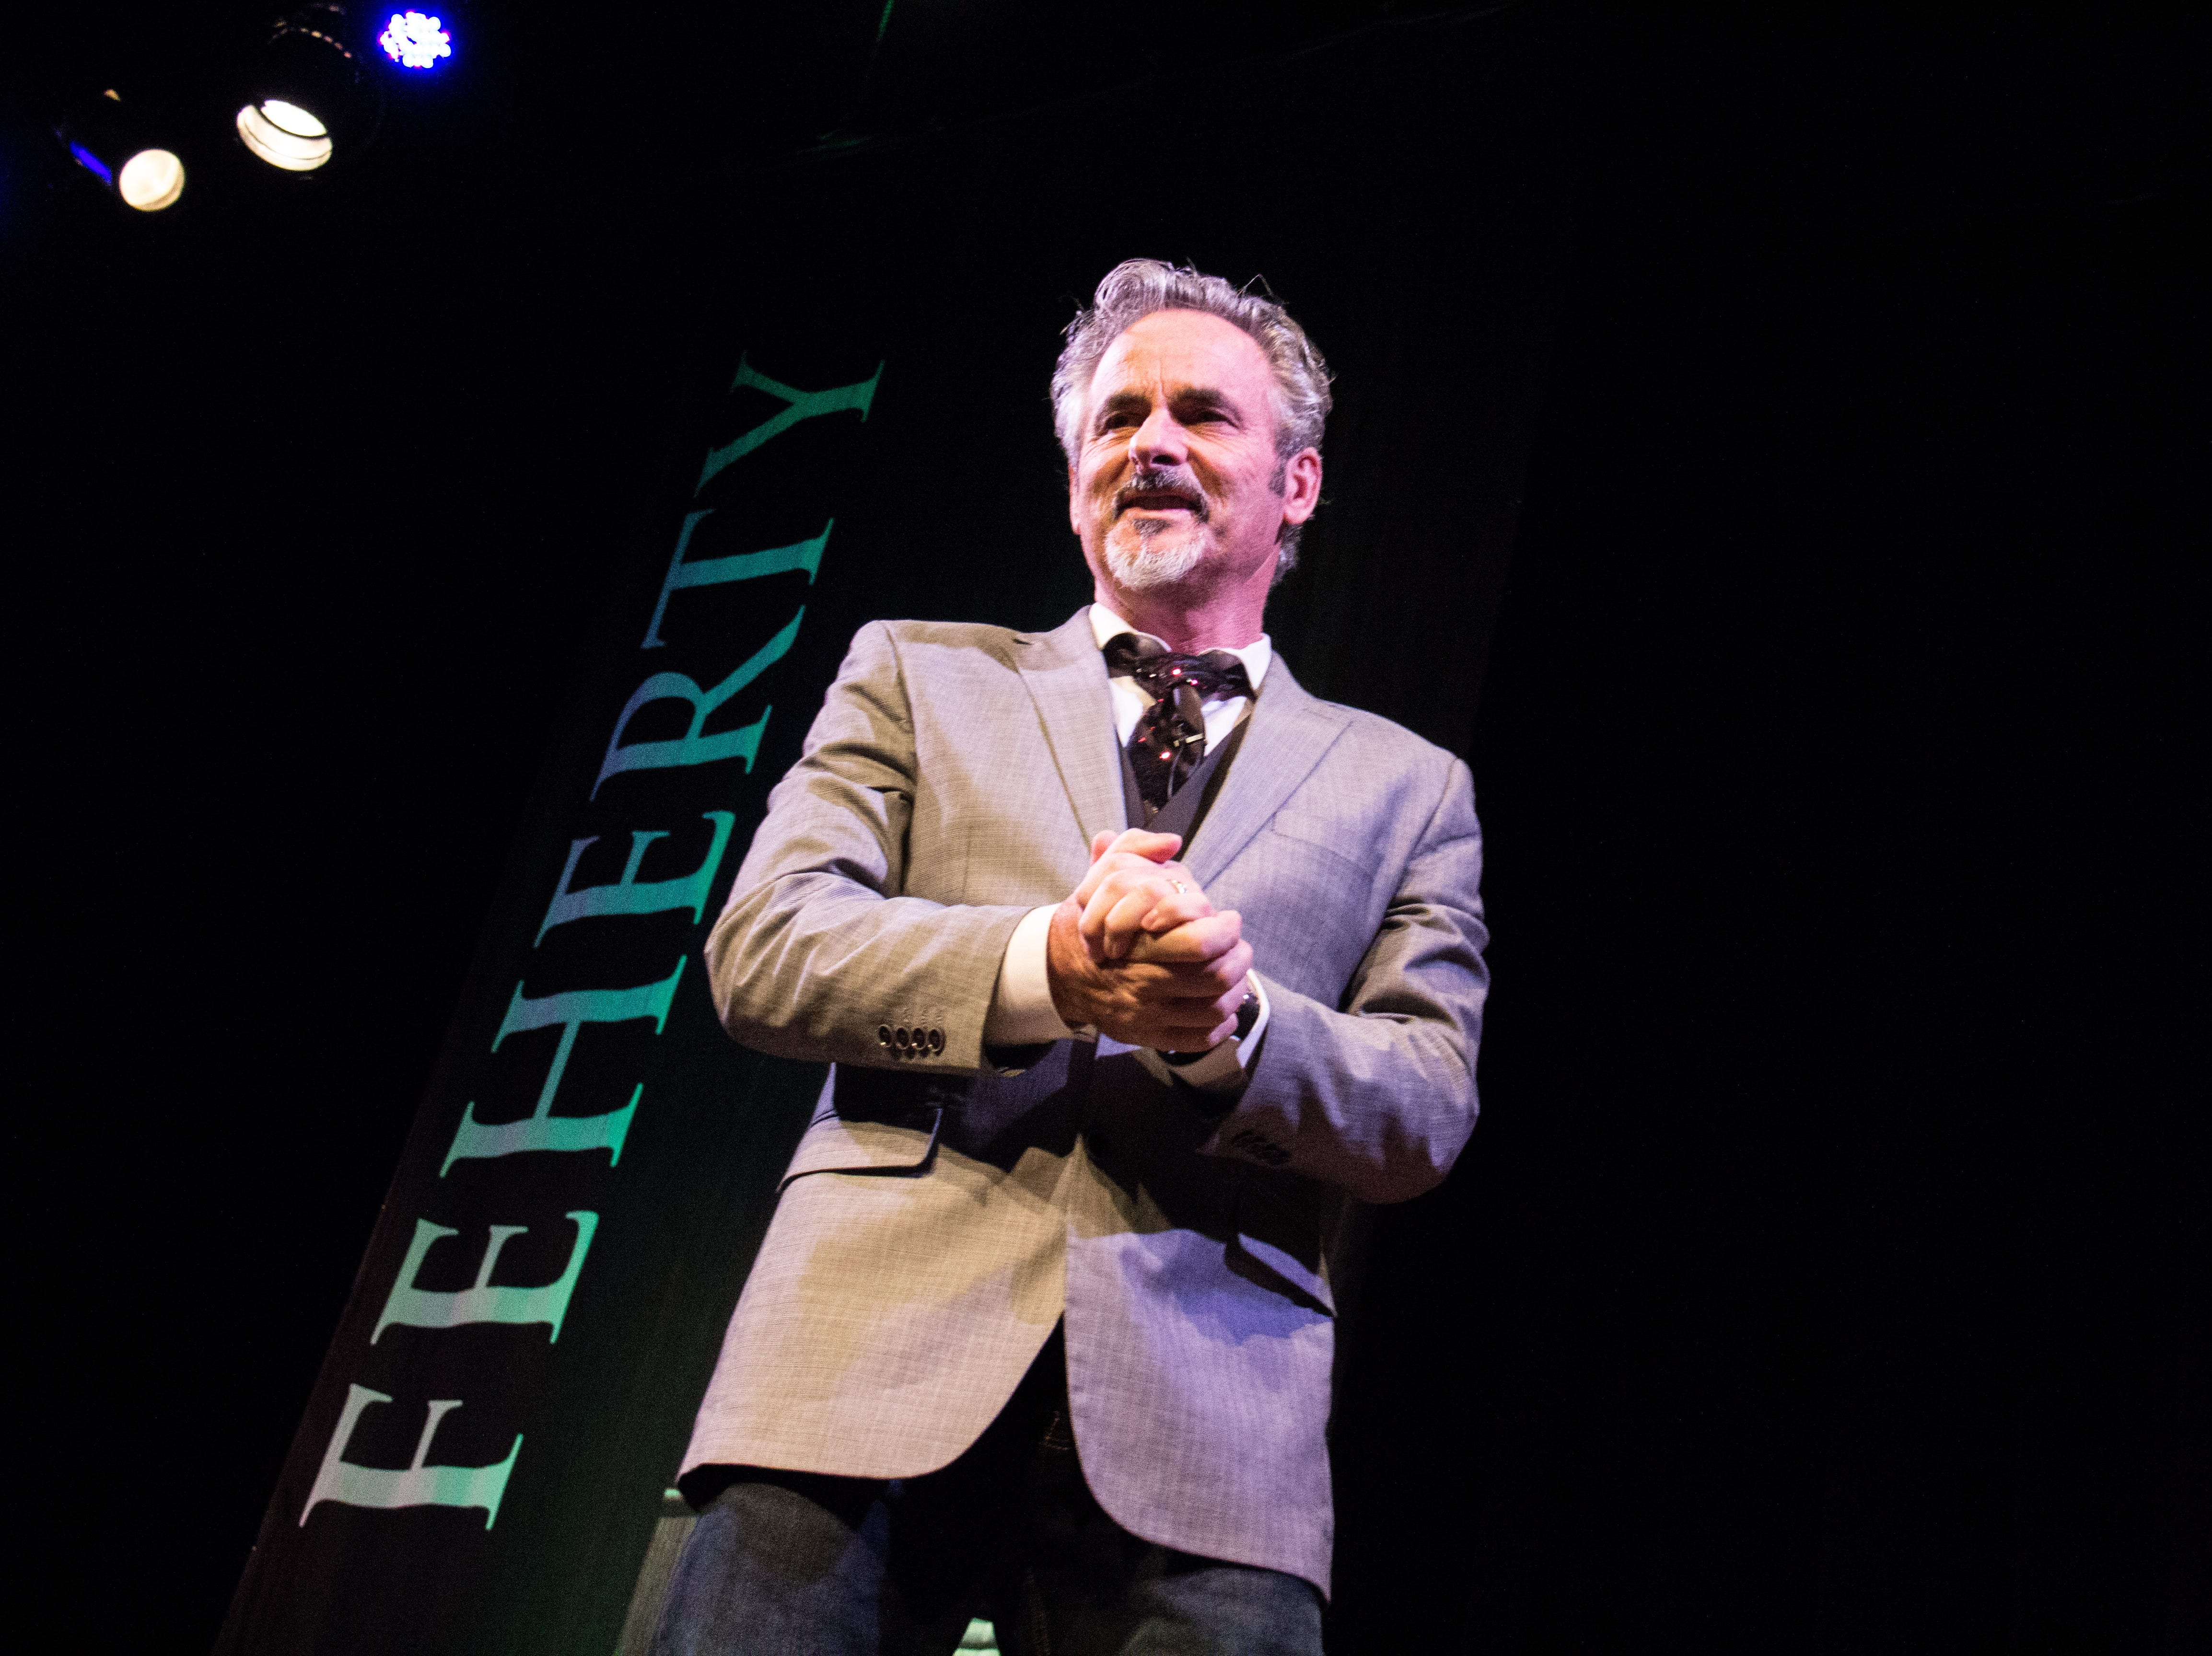 David Feherty performs his comedy routine at the Bijou Theatre in Knoxville on Nov. 16, 2018.